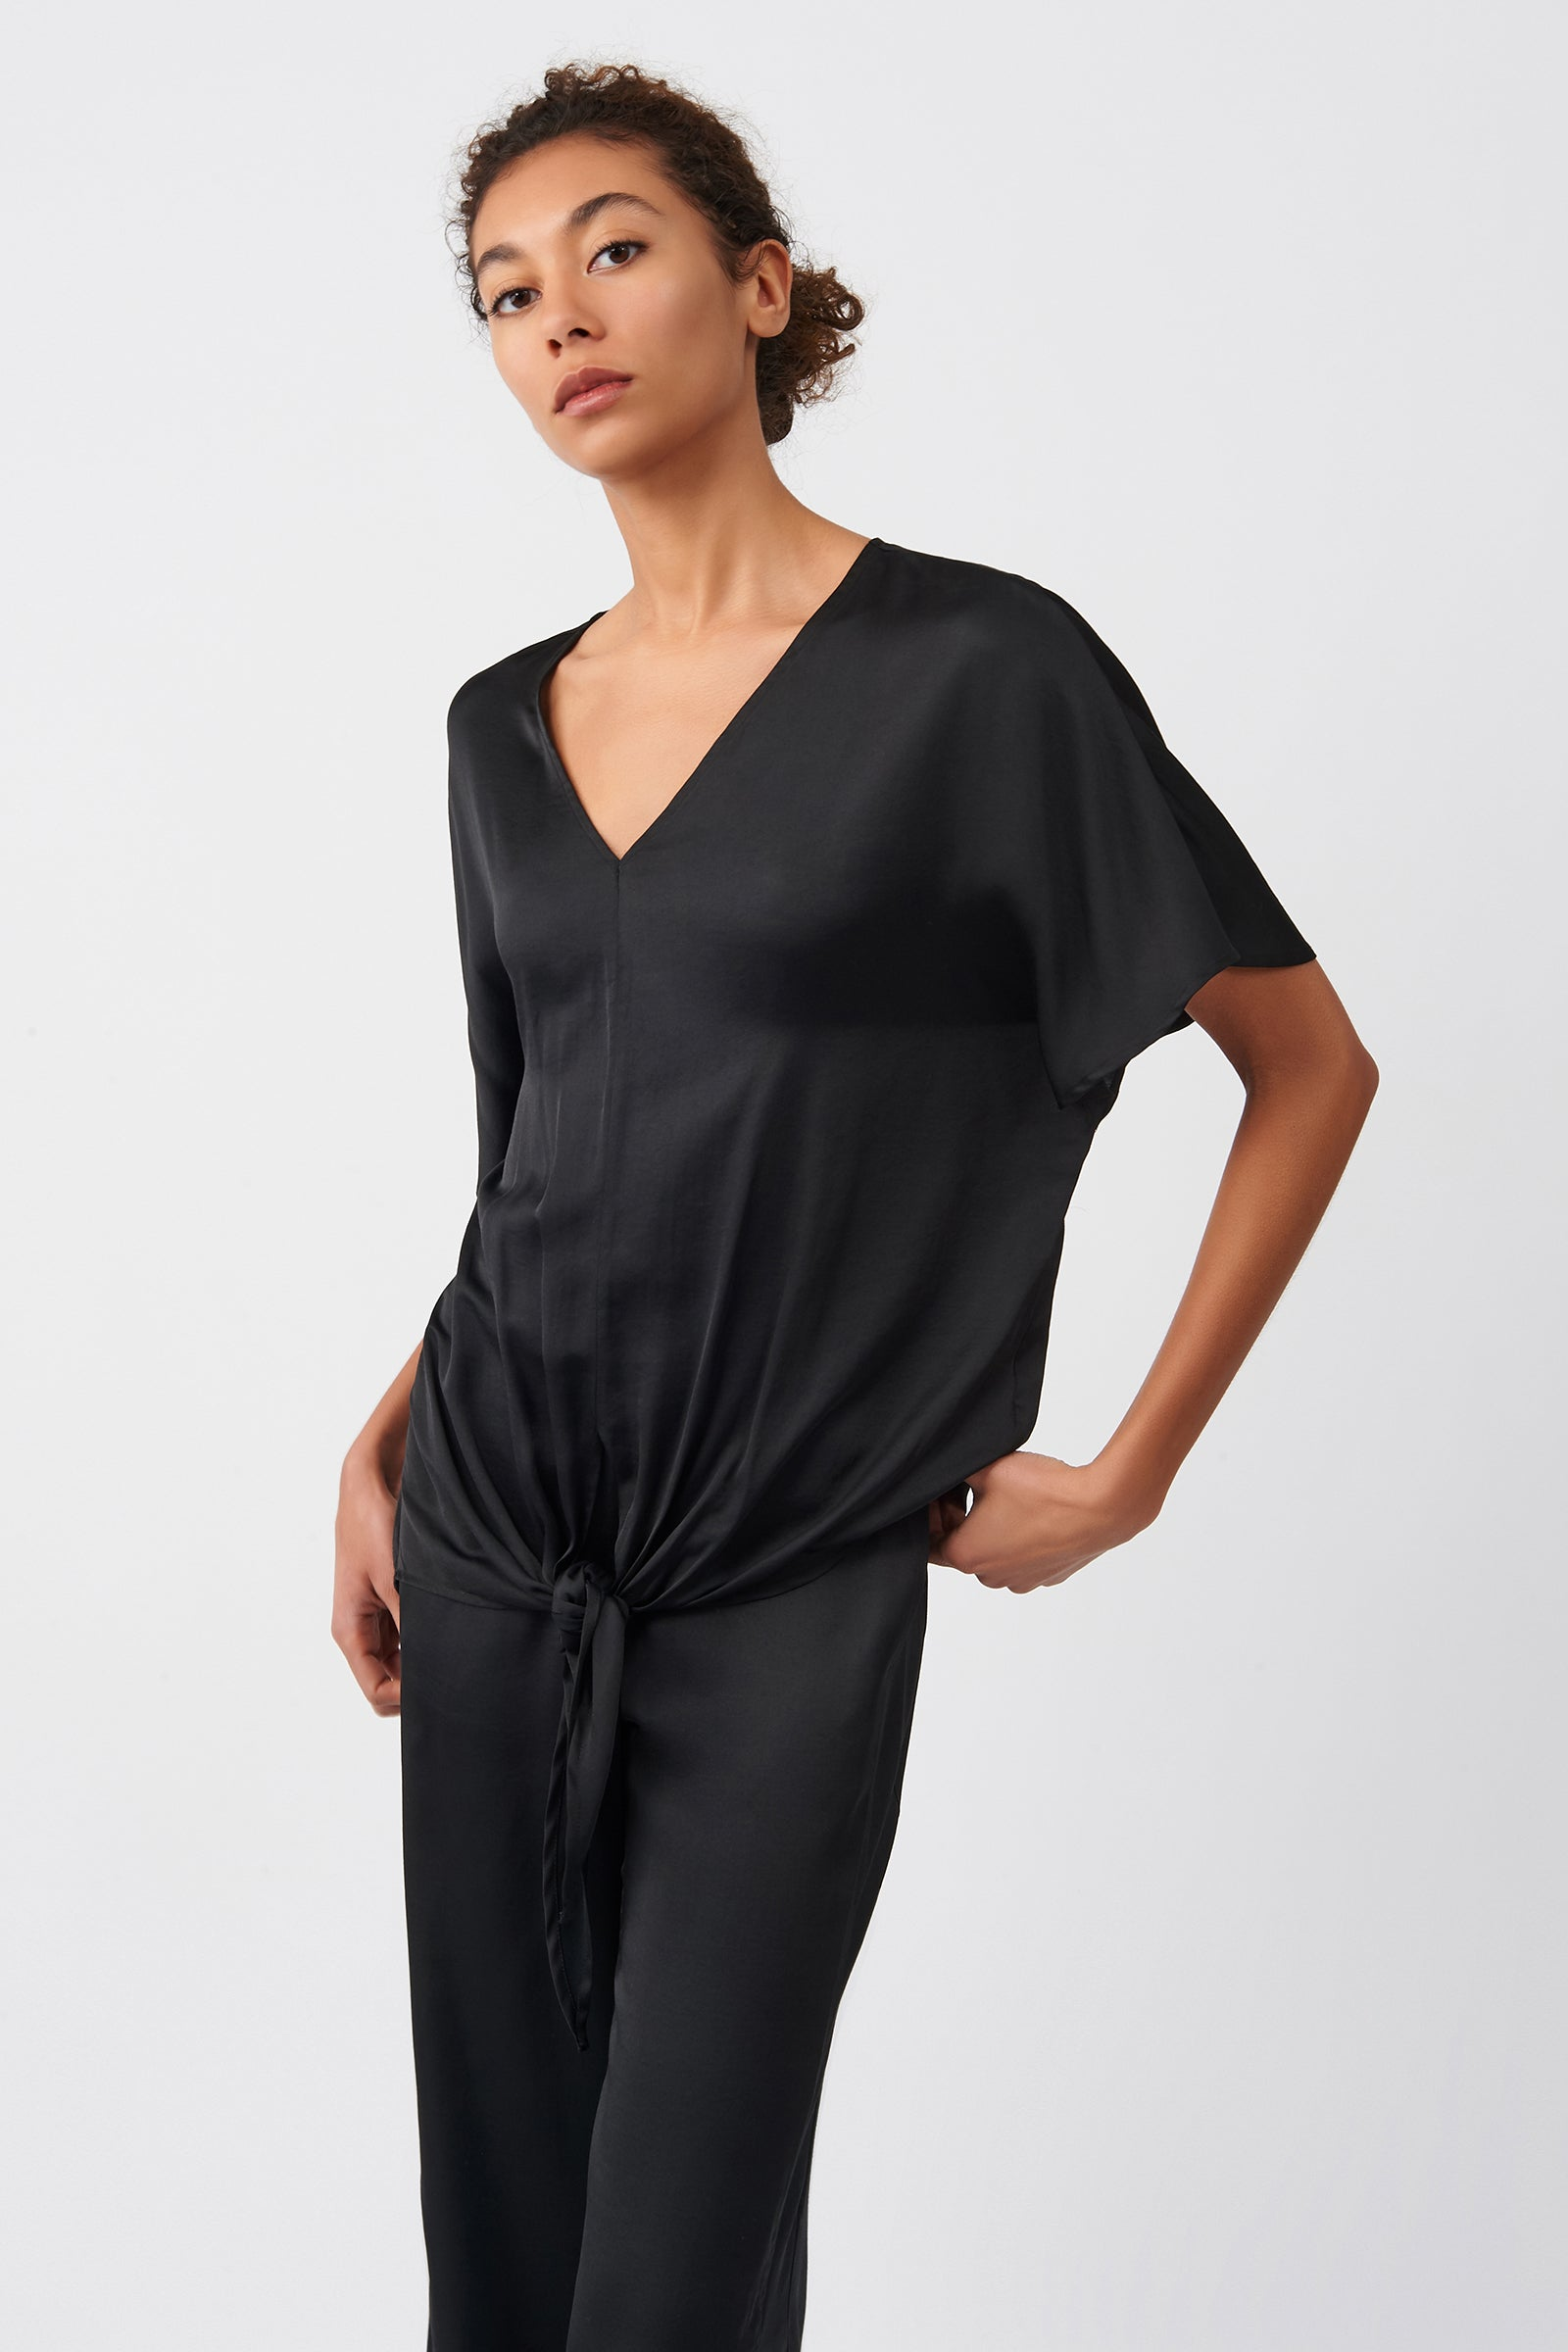 Kal Rieman Tie Front Top in Black on Model Front Side View